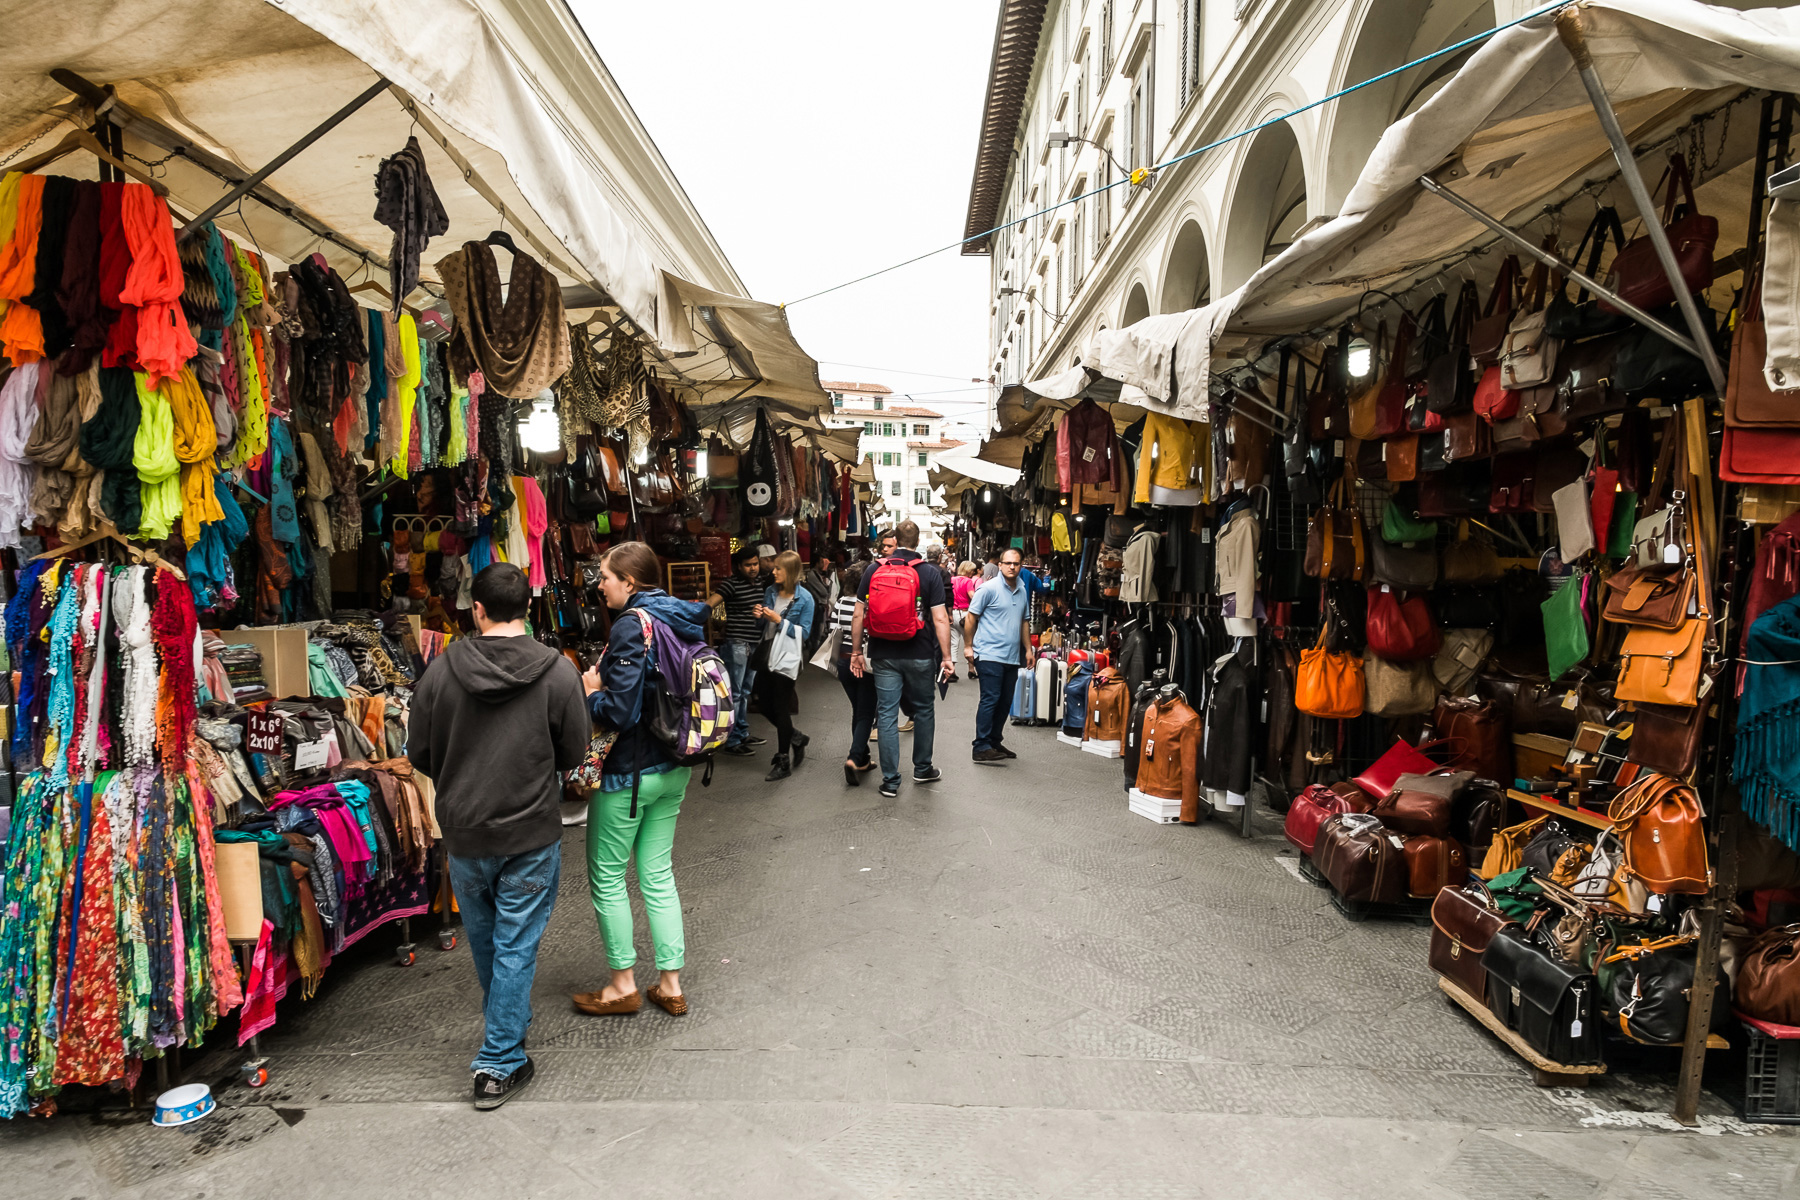 Rows of leather and clothing vendors lined the streets just outside Florence's Mercato Centrale.